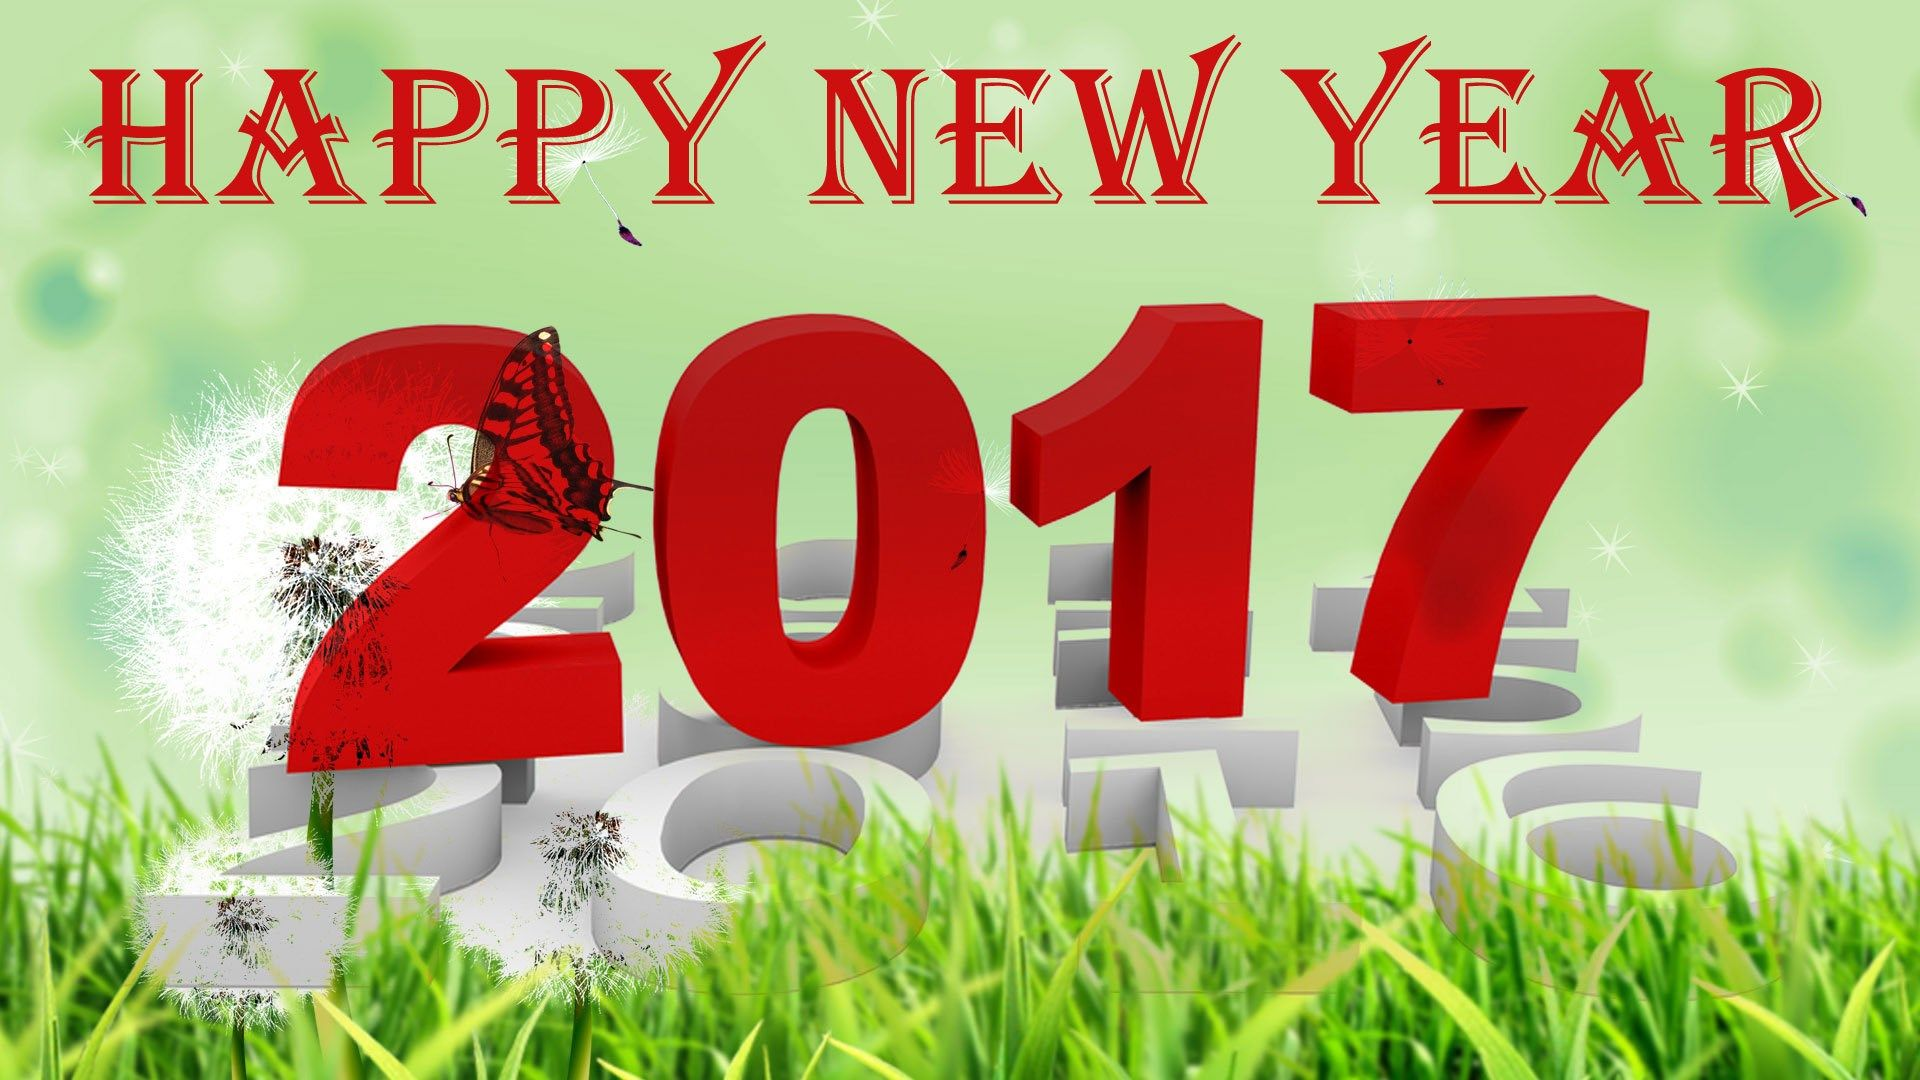 Amazing HQ Definition Wallpaper Desktop Happy New Year 2017 Image   Happy New Year  2017 Category